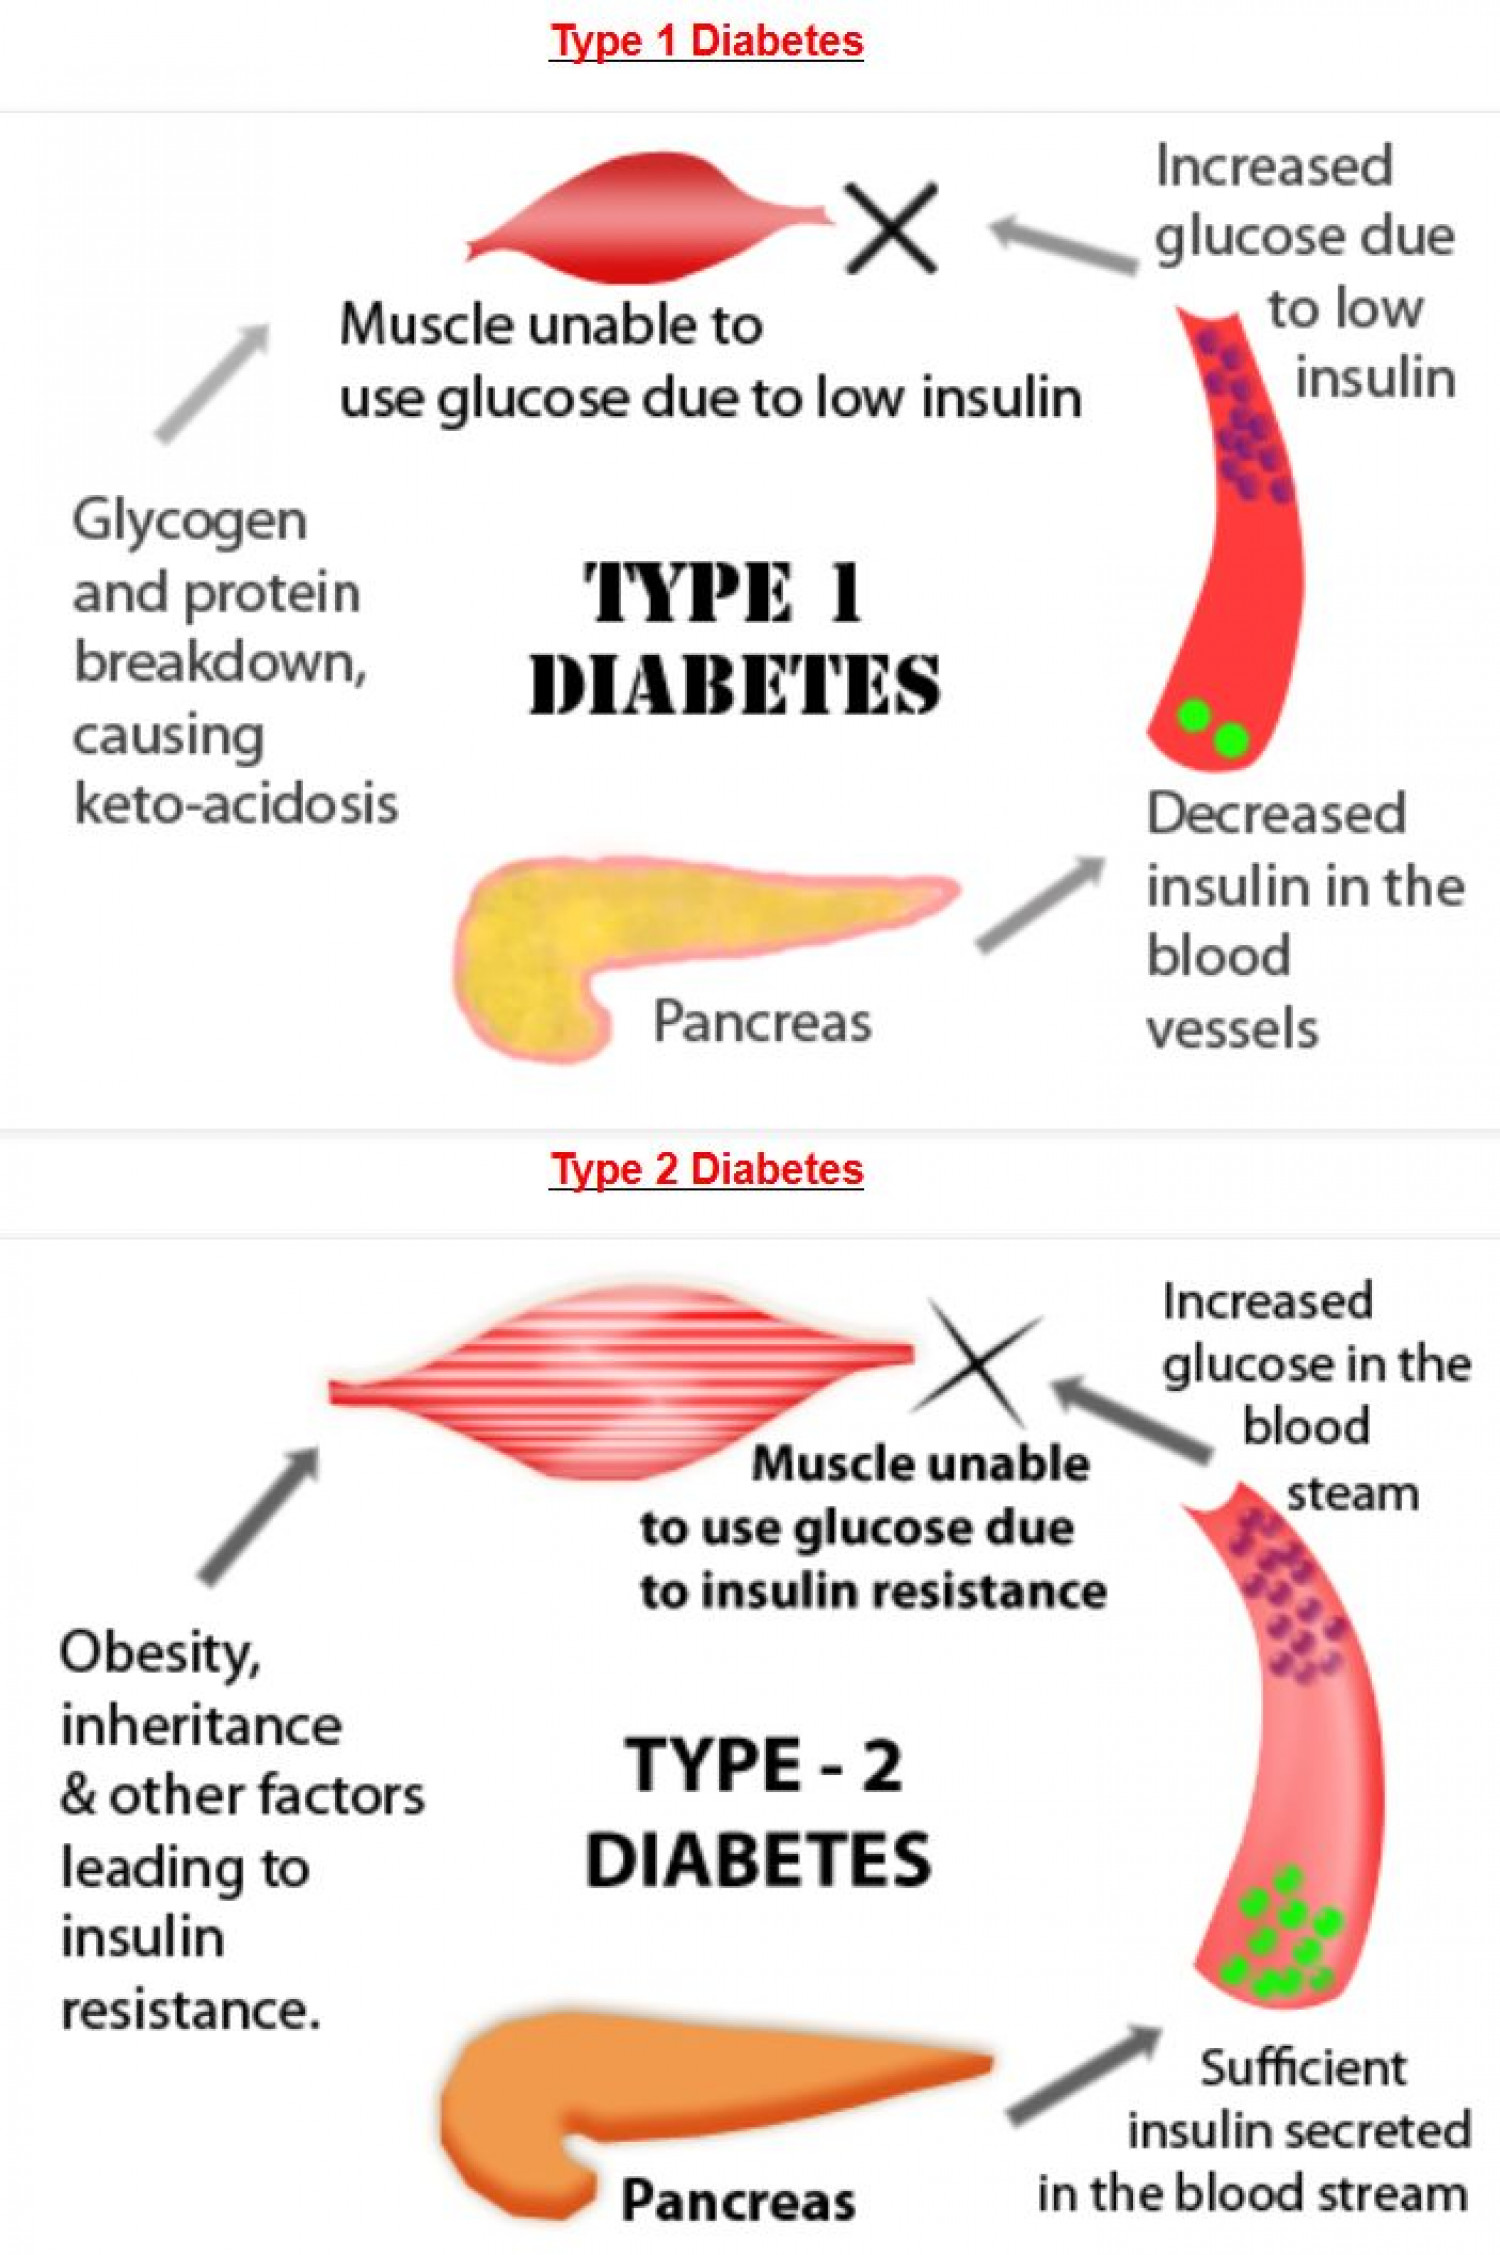 Diabetes: Type 1 Diabetes v/s Type 2 Diabetes Infographic